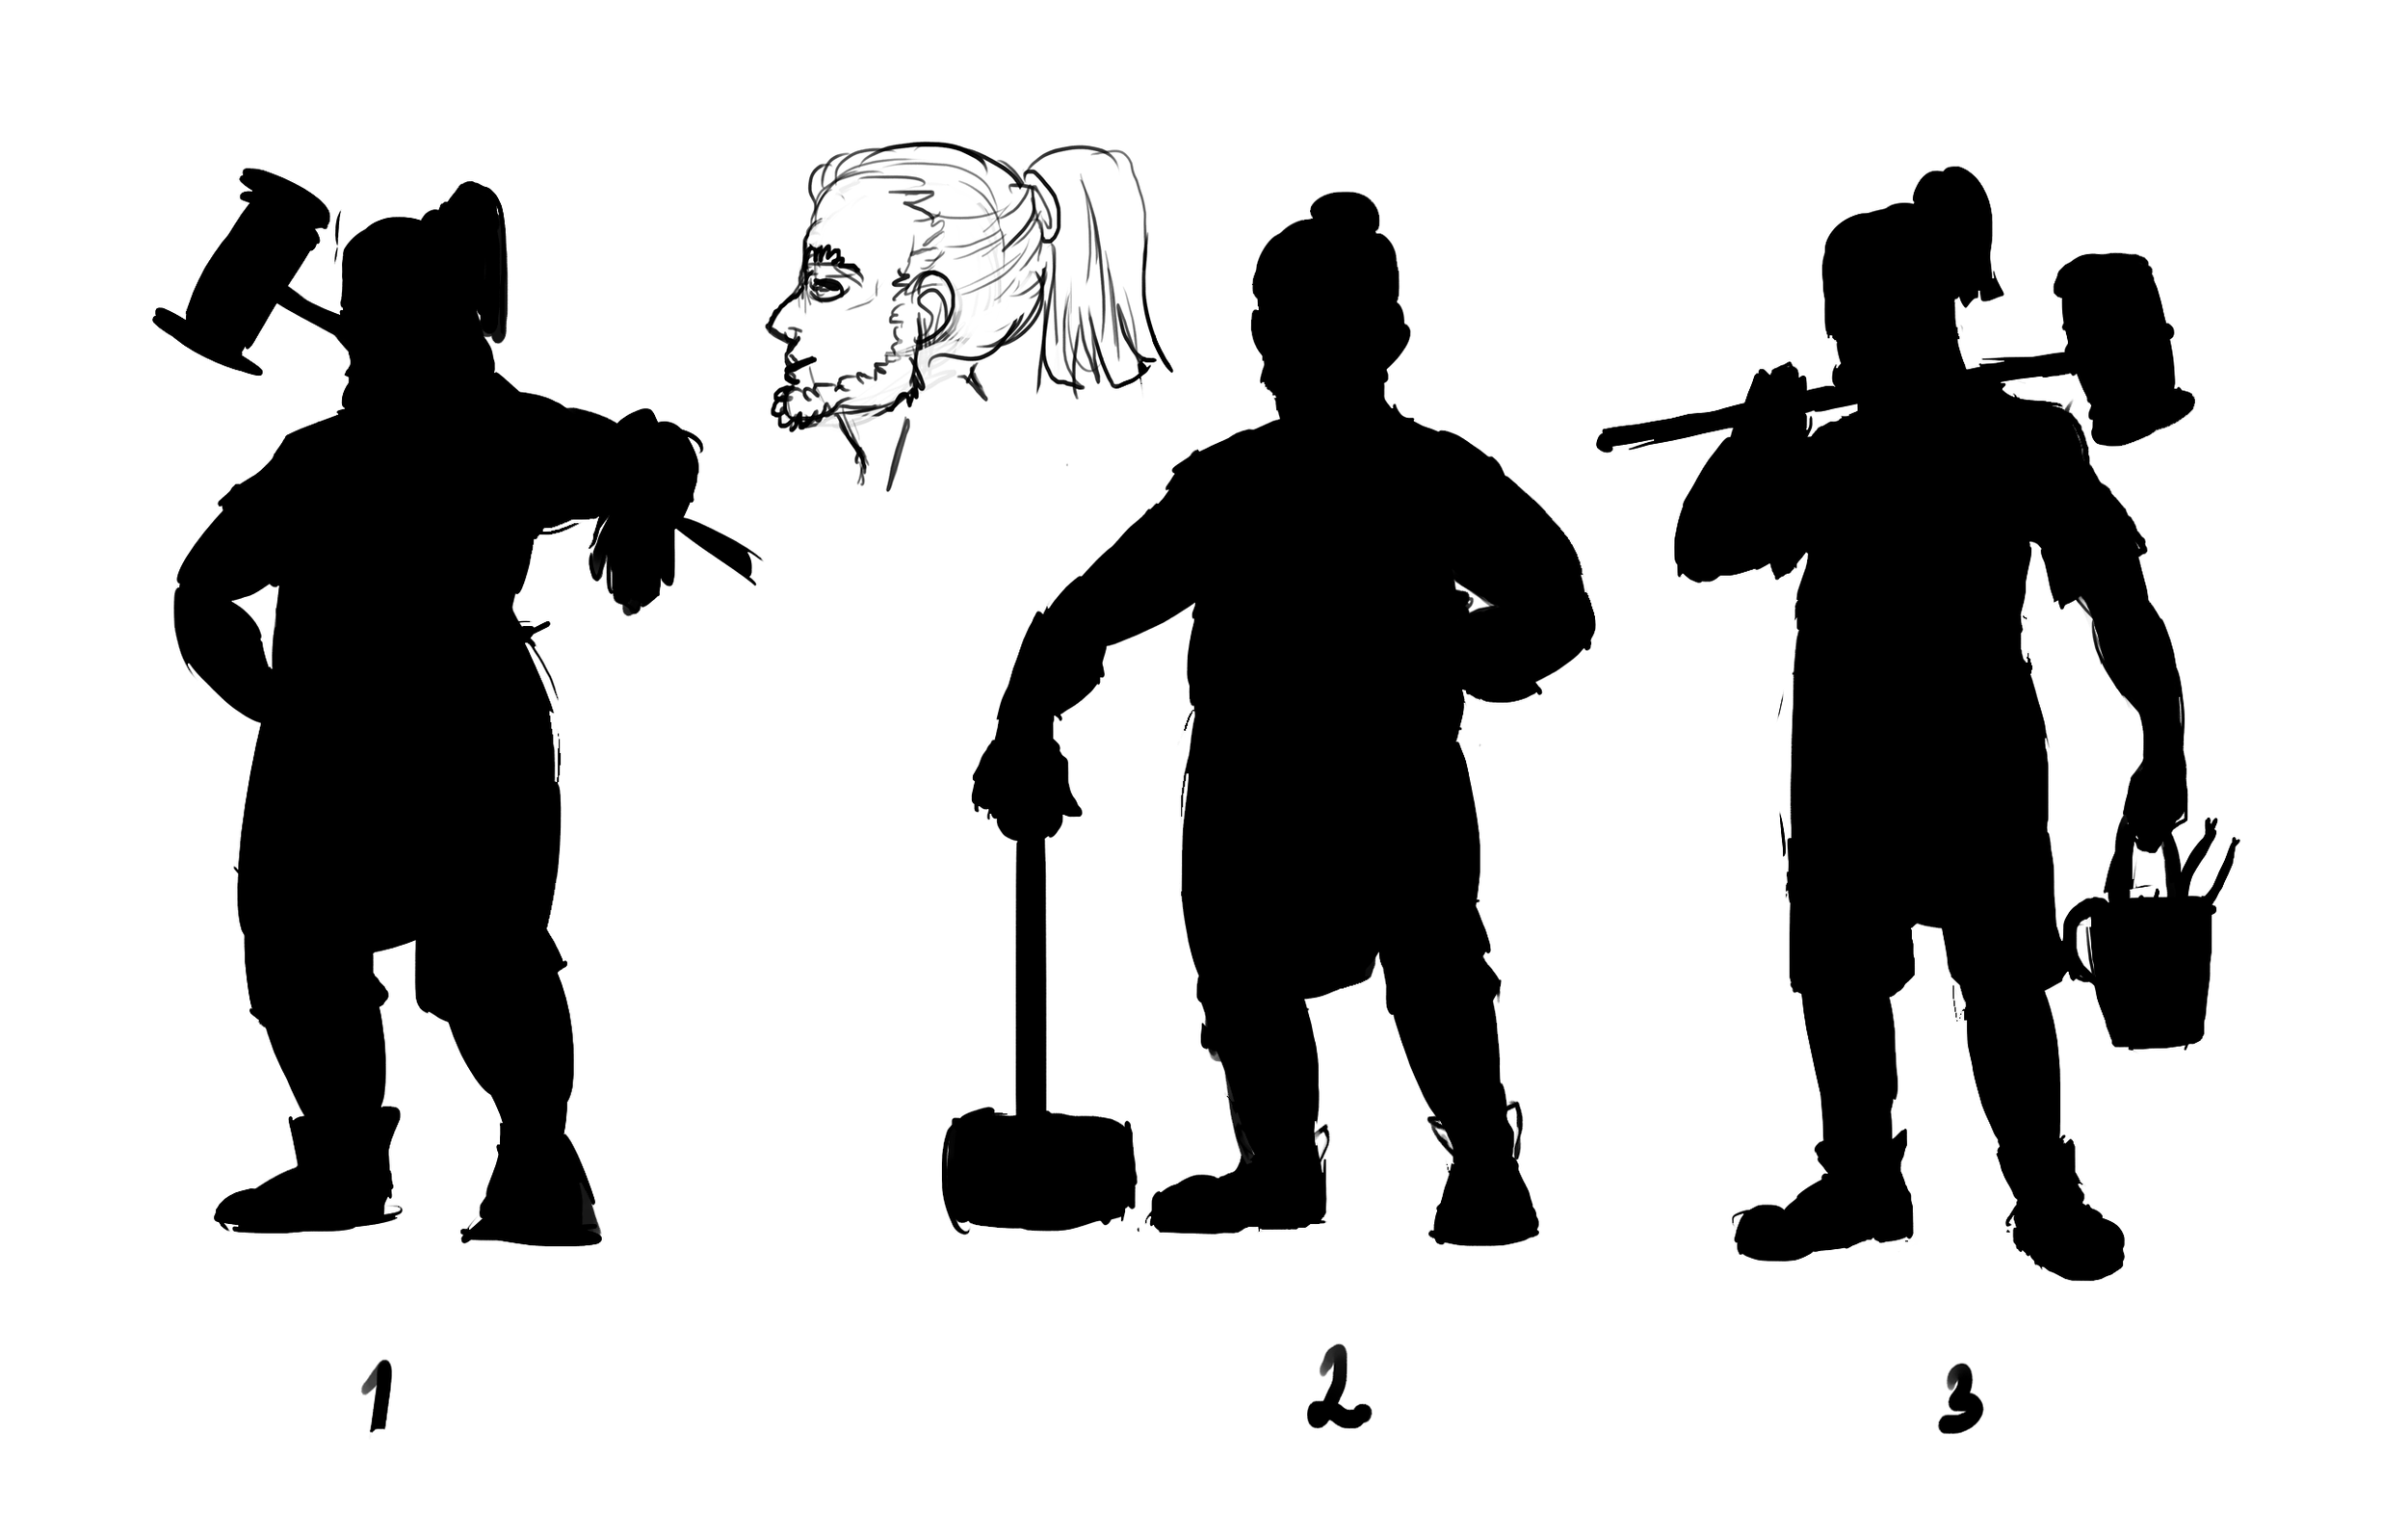 Early concept   Working on silhouettes for Diego